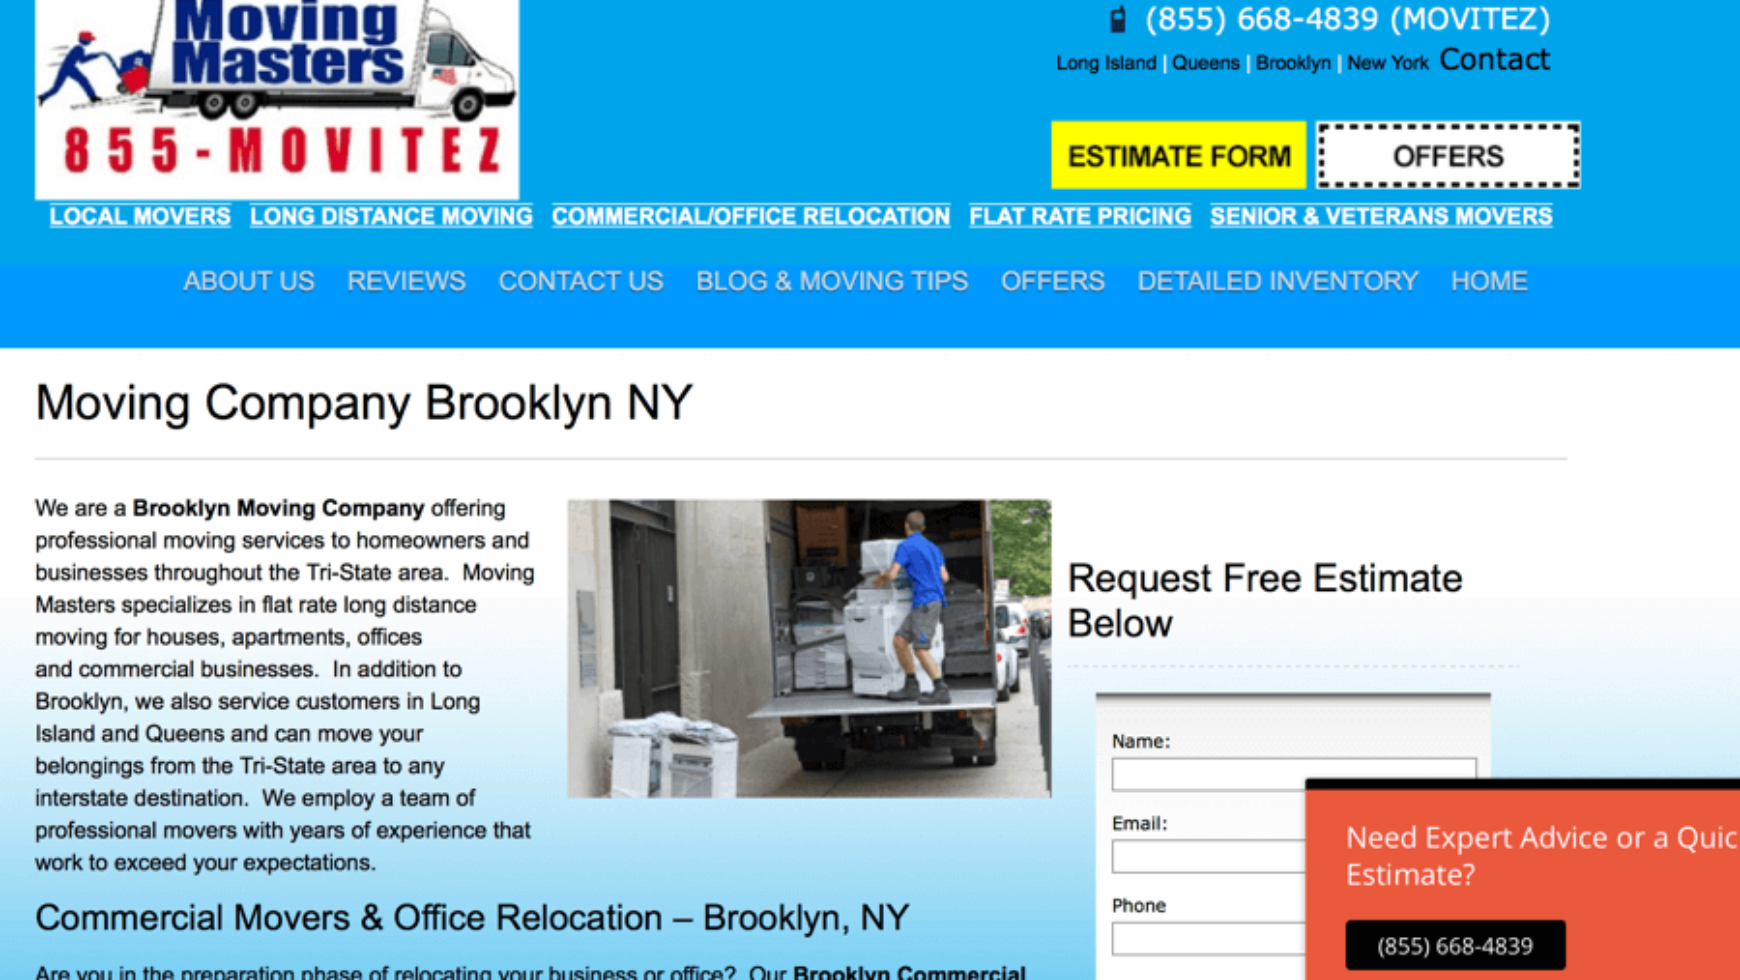 Moving Masters – Moving Company SEO – New York